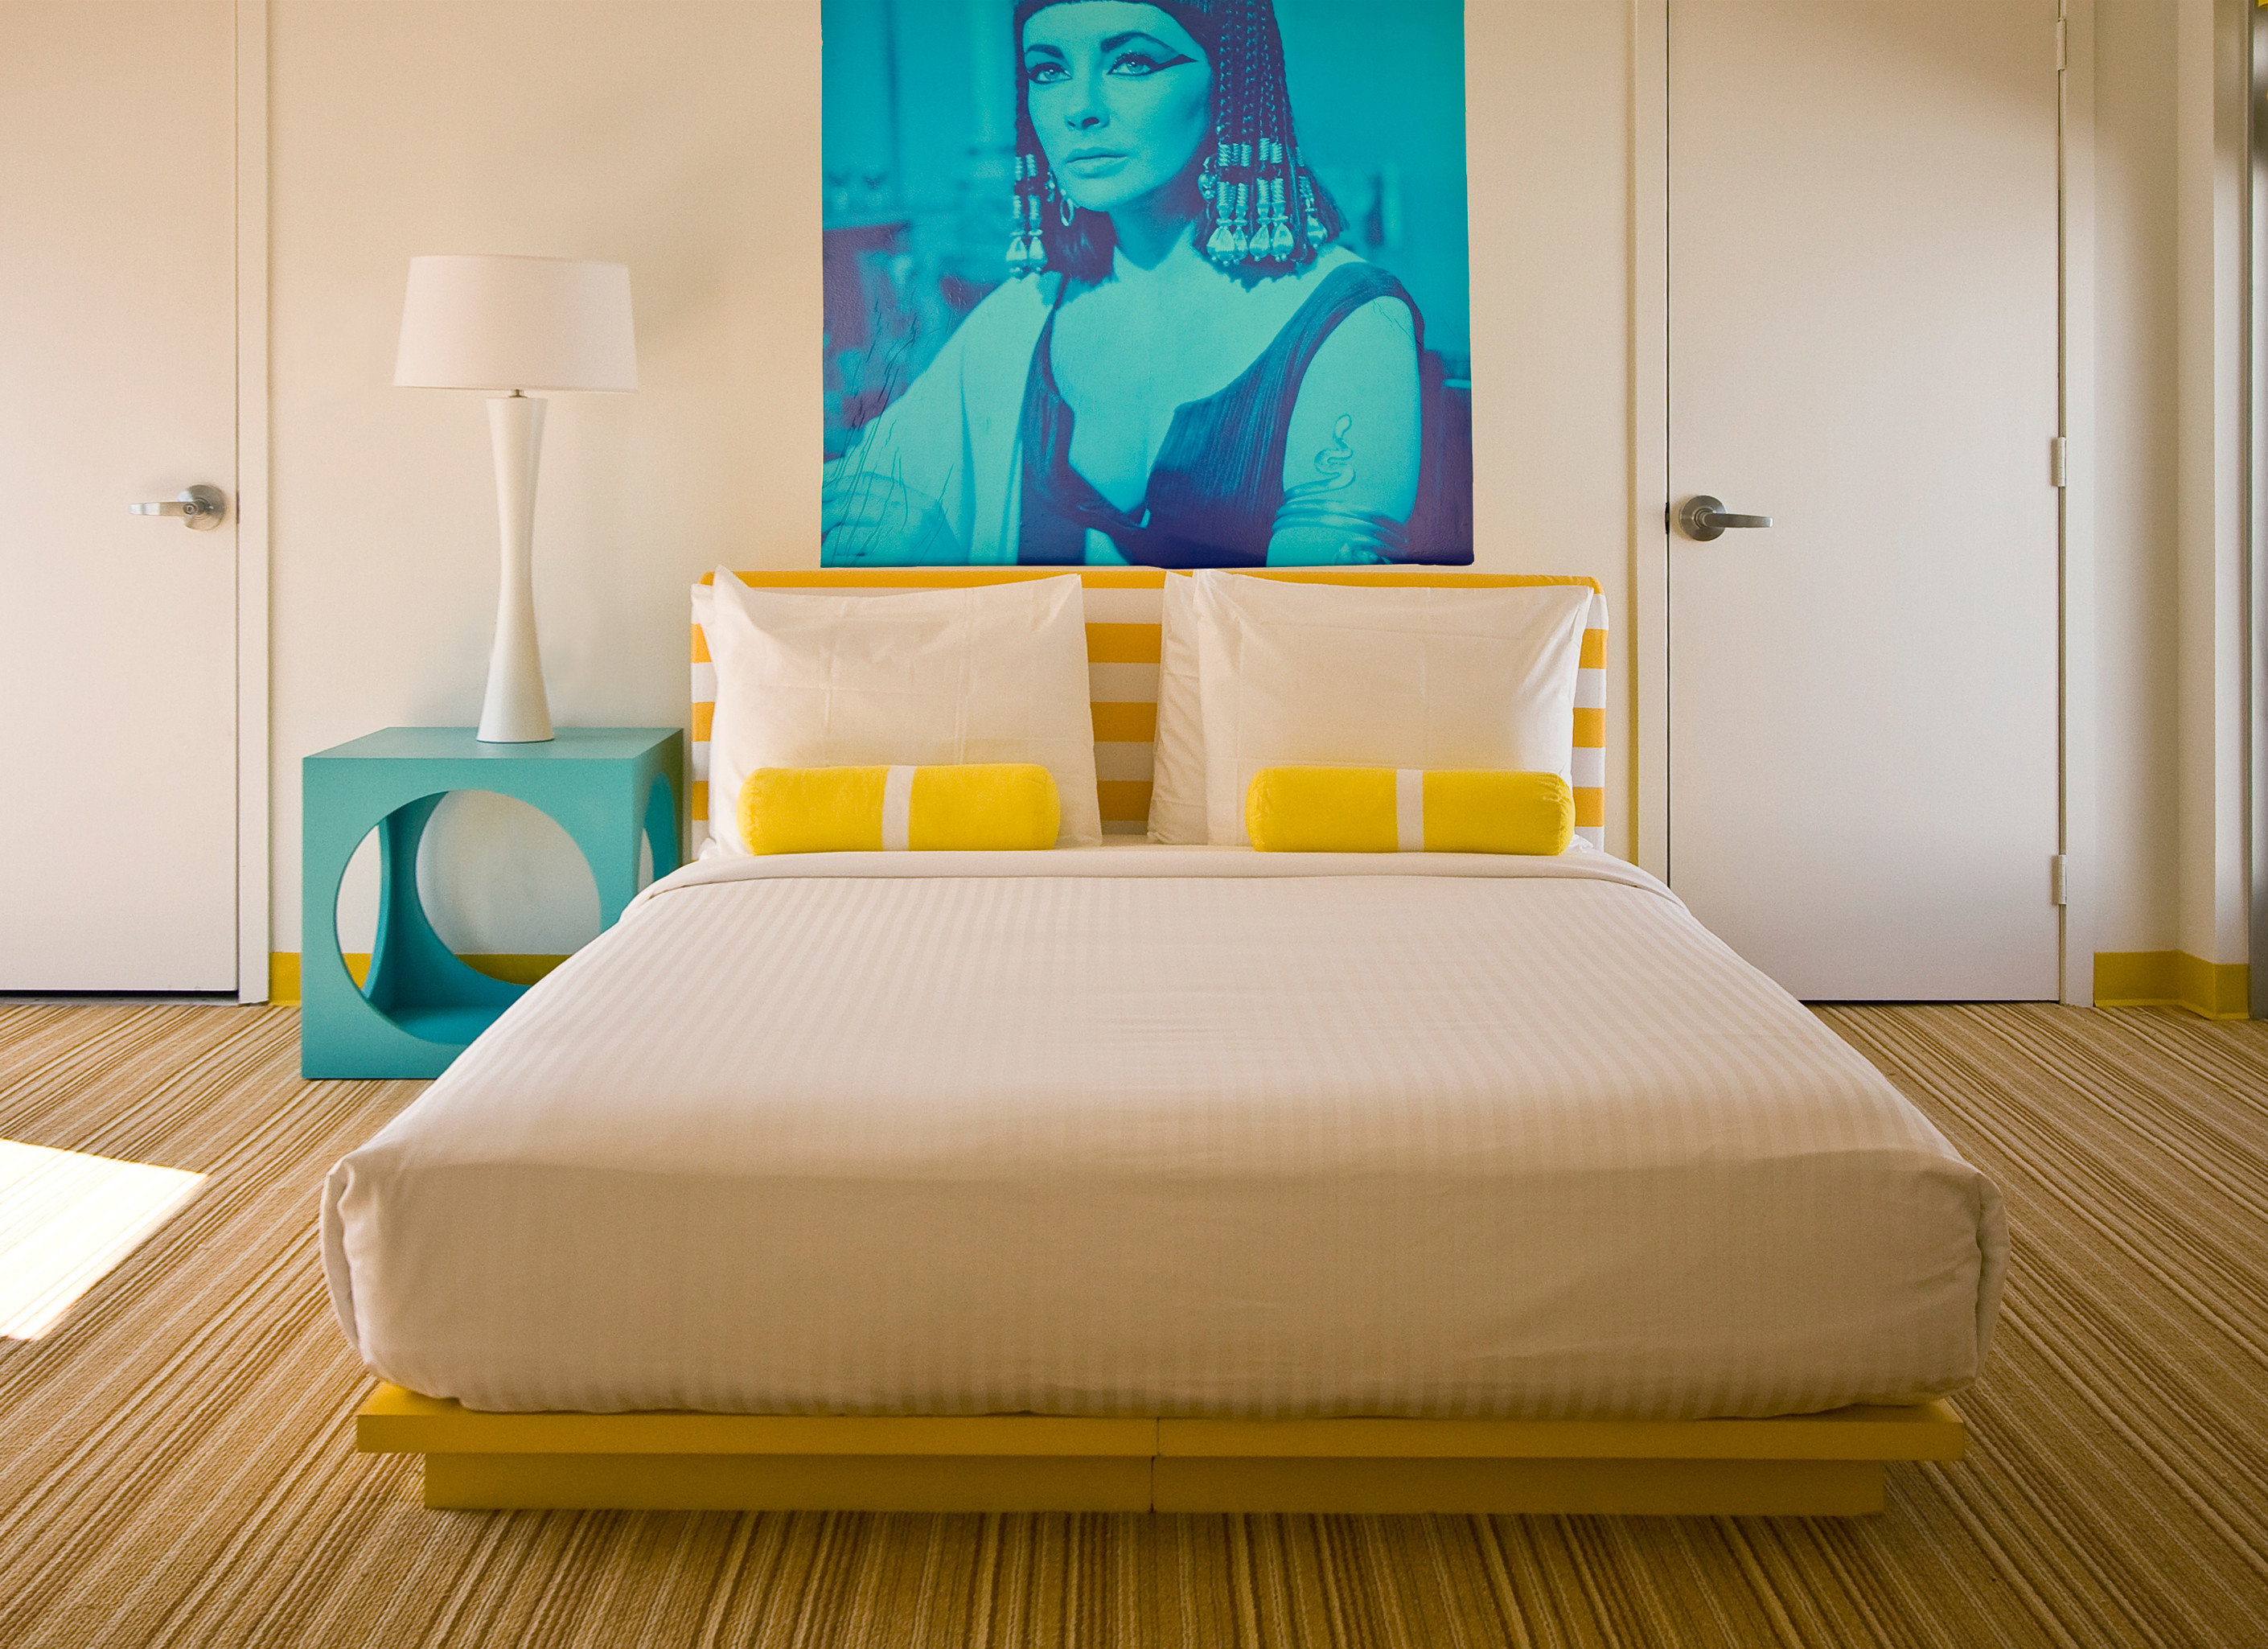 Bedroom Lounge Luxury Modern Suite yellow bed sheet bed frame